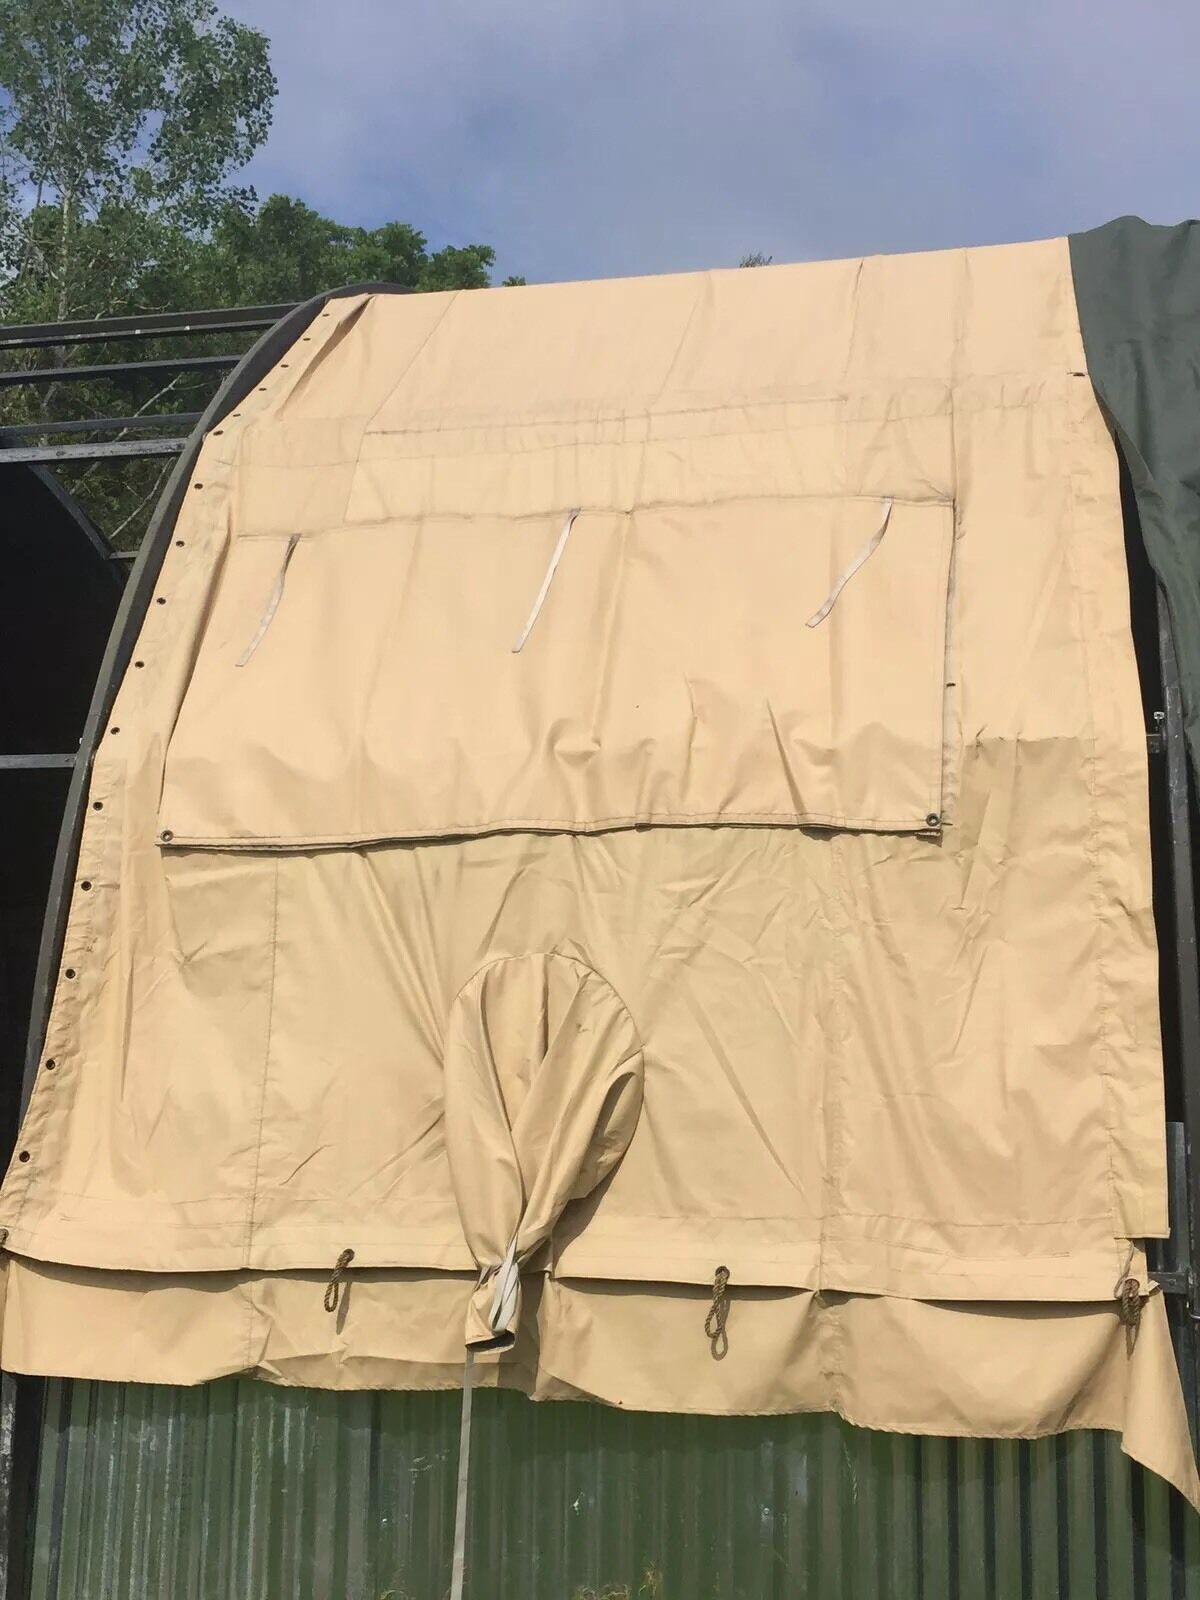 Temper Tent Window Center Abschnitt Temperierte Wüste Tan Vinyl Tarp NOS